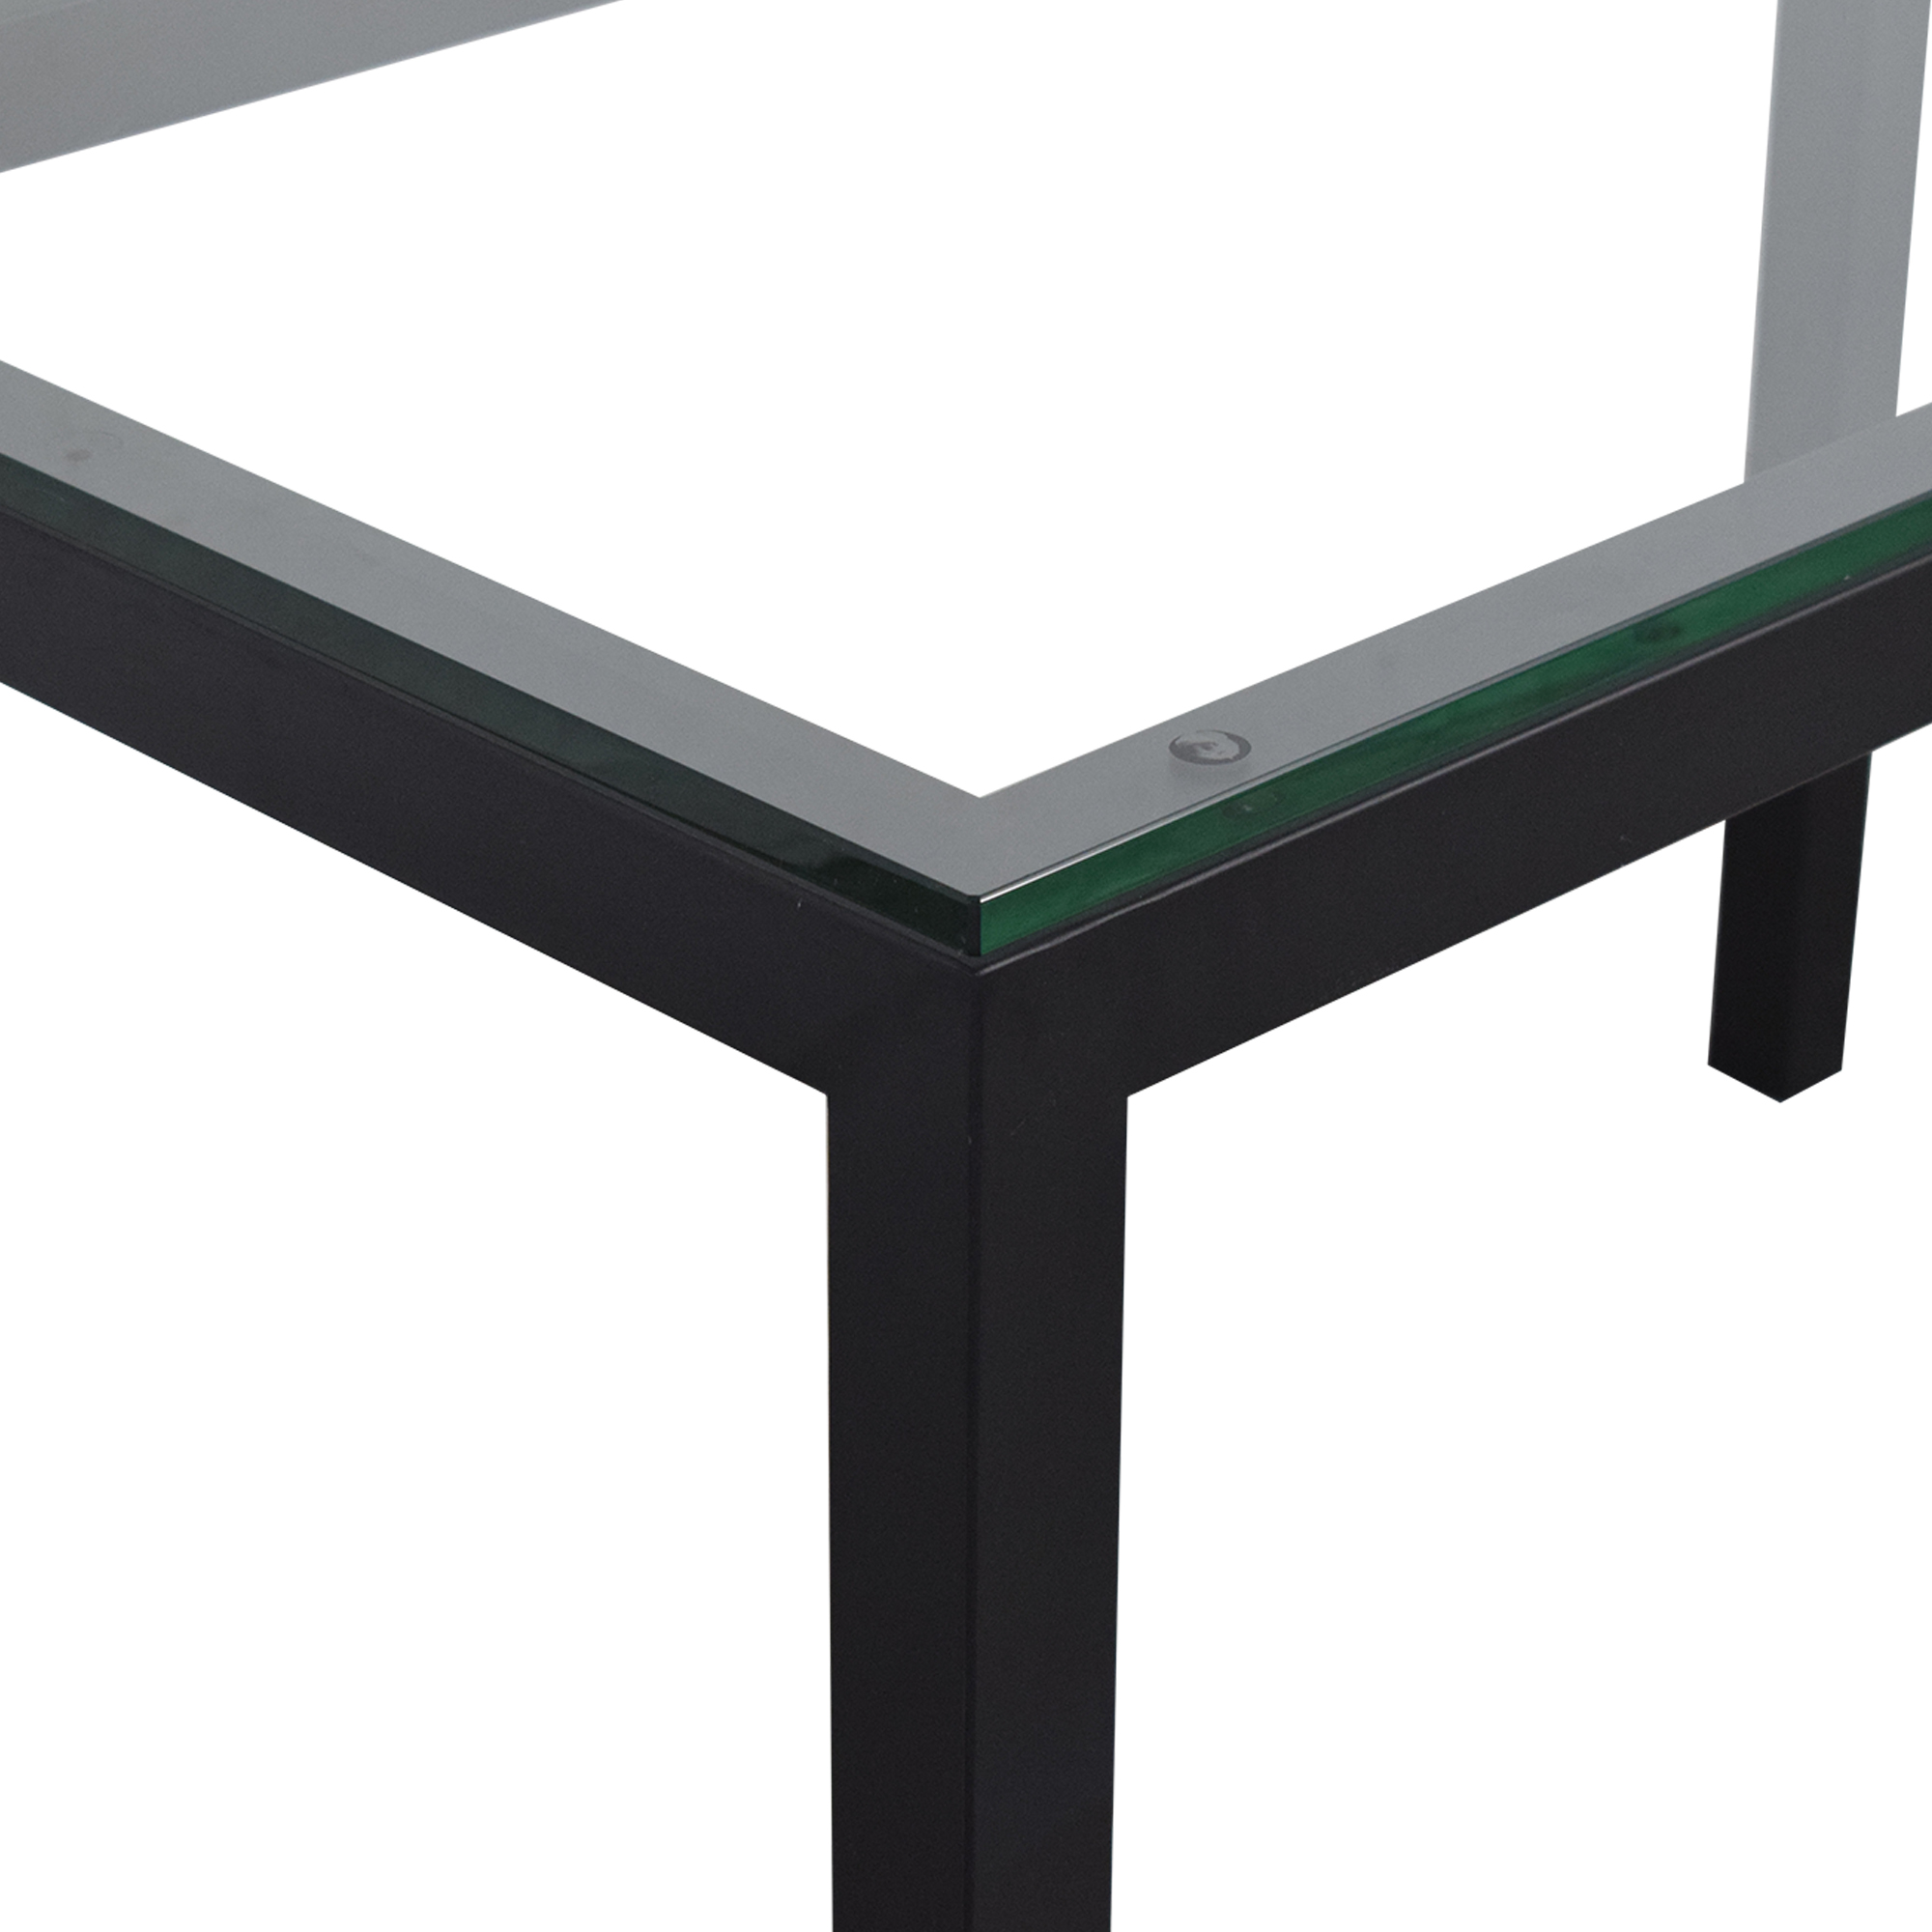 Crate & Barrel Crate & Barrel Glass and Steel Parsons Table pa